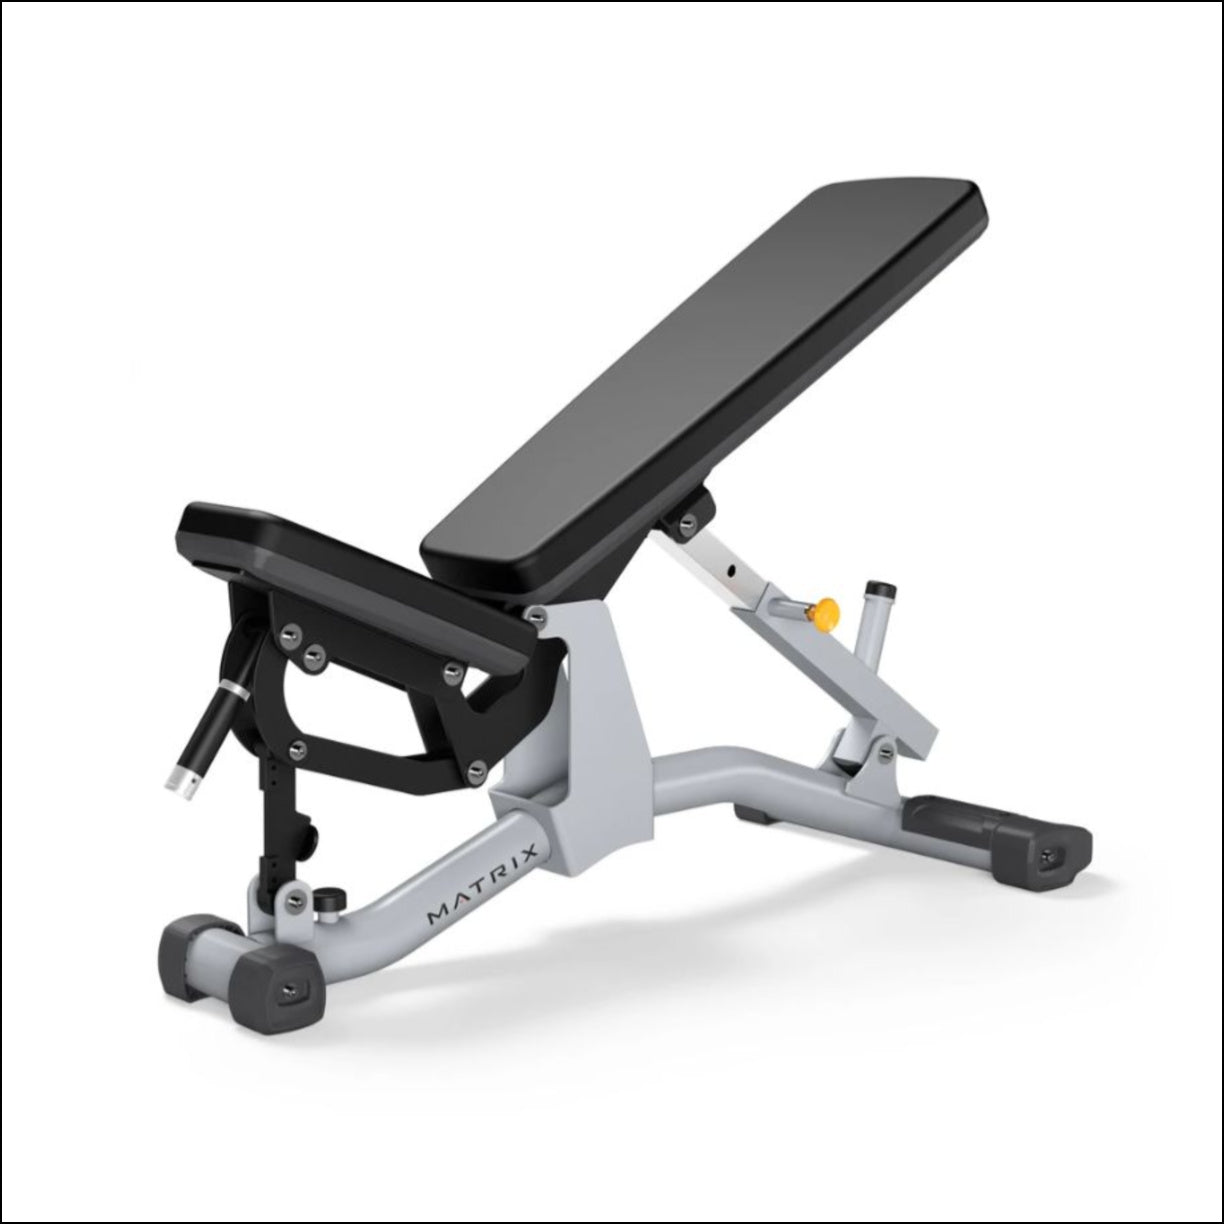 MATRIX MG-A85 MULTI ADJUSTABLE BENCH Seat automatically adjusts with the back pad for ease of use Adjustable back pad with 5 positions from 0 to 80 degrees Wide back pad stabilises users during heavy lifts